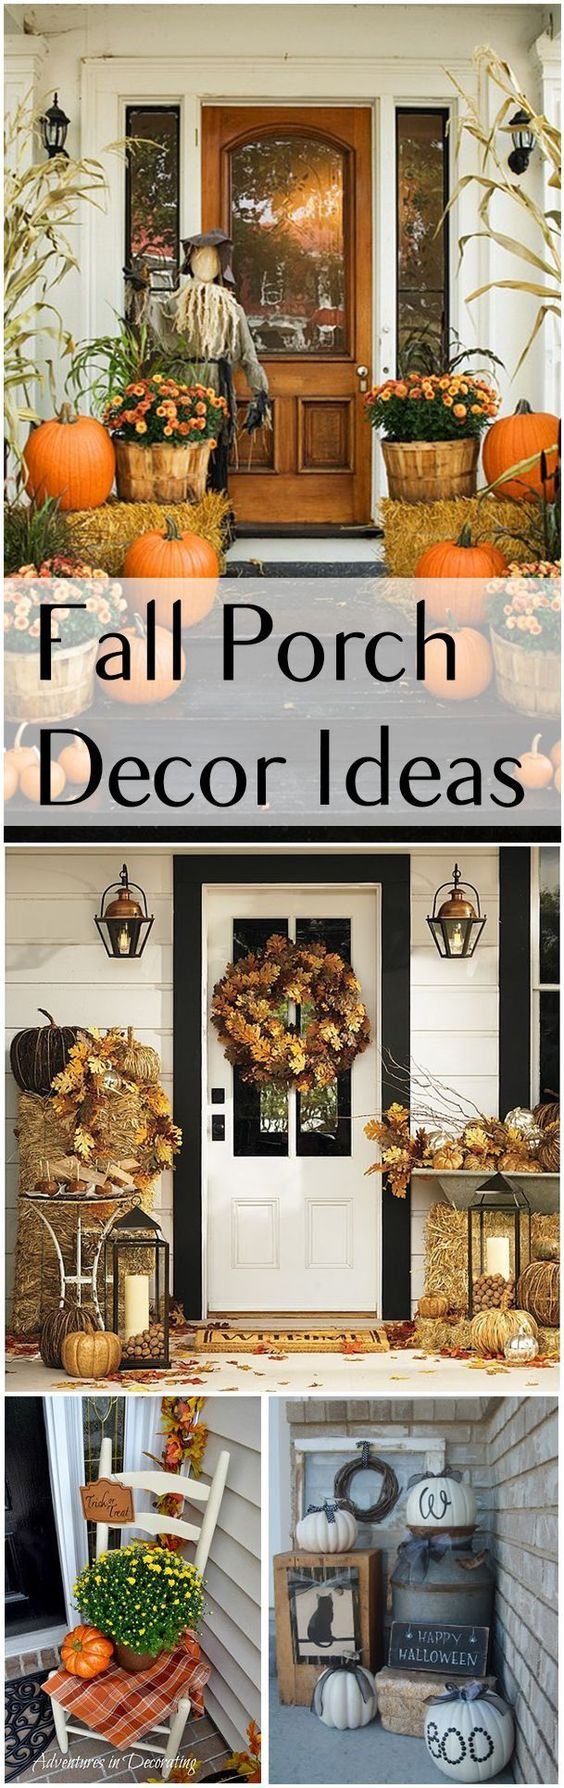 Fall Porch Decor Ideas- Amazing Fall decorations and front door and porch decoration ideas.: